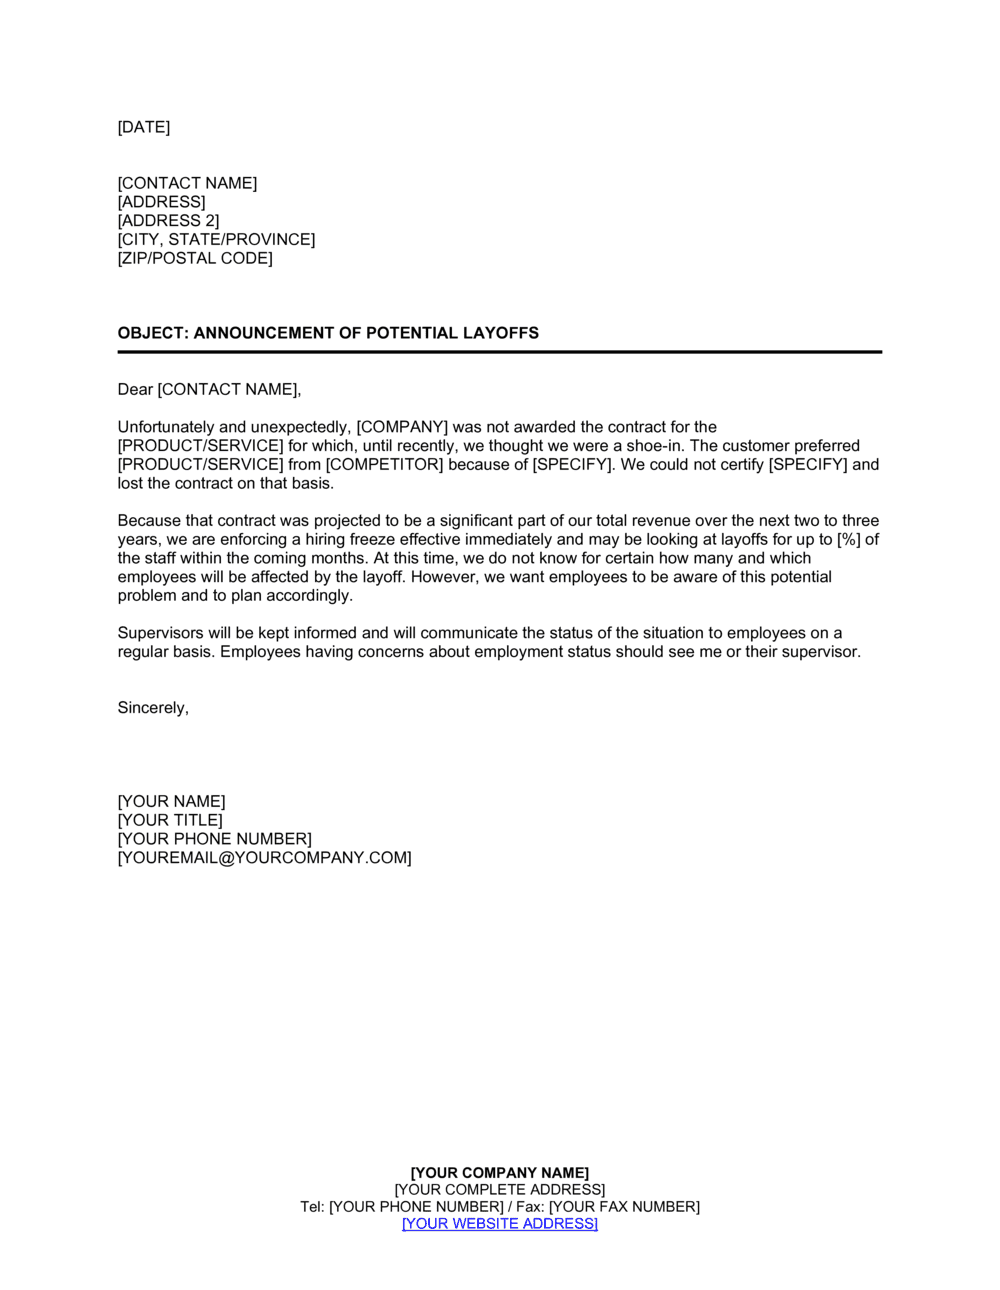 Business-in-a-Box's Notice of Layoff 1 Template